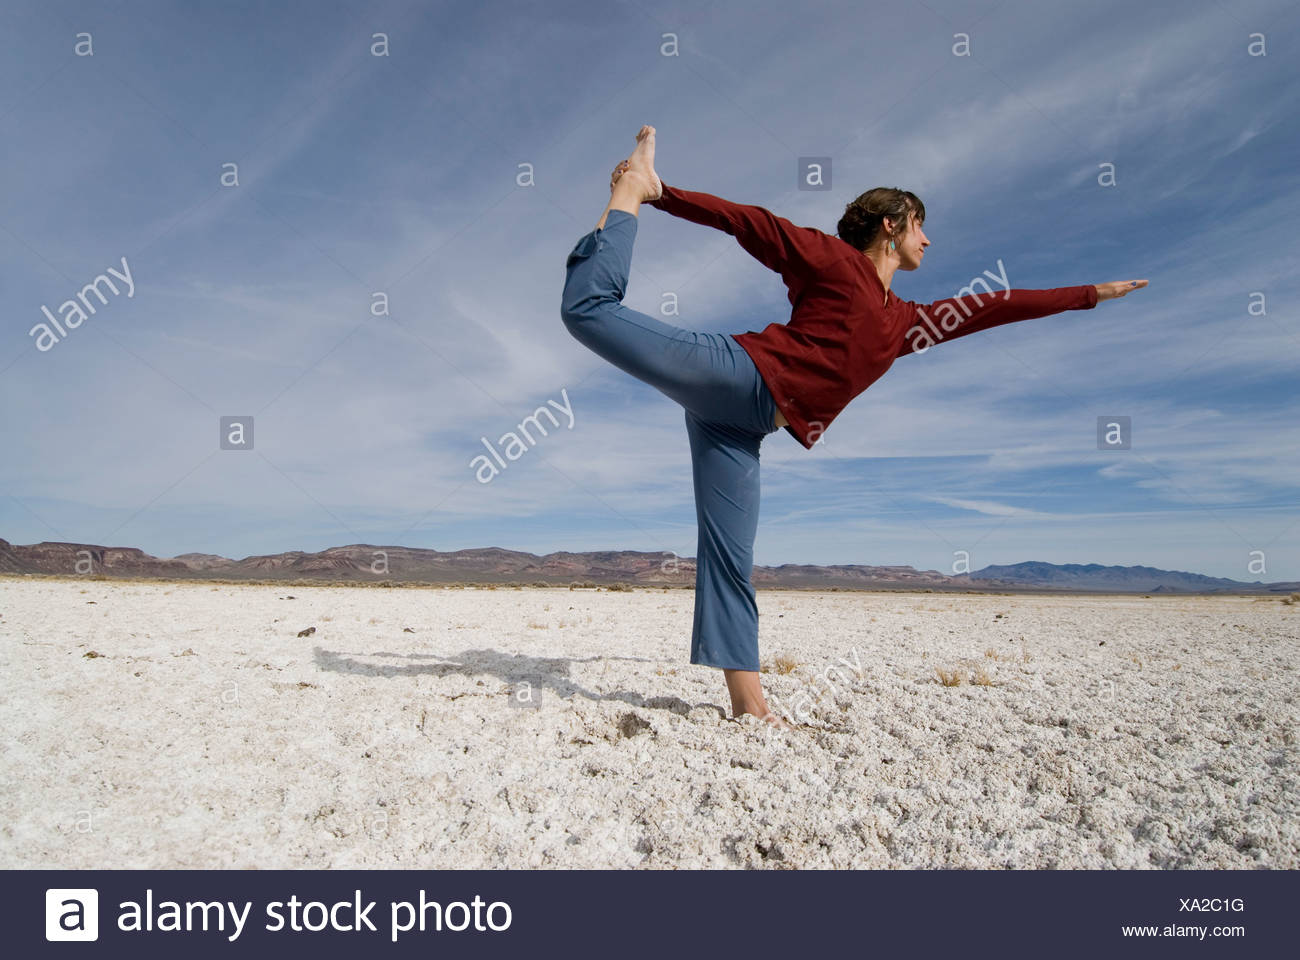 A young woman does yoga on a barren saltflat in Western Nevada. Stock Photo